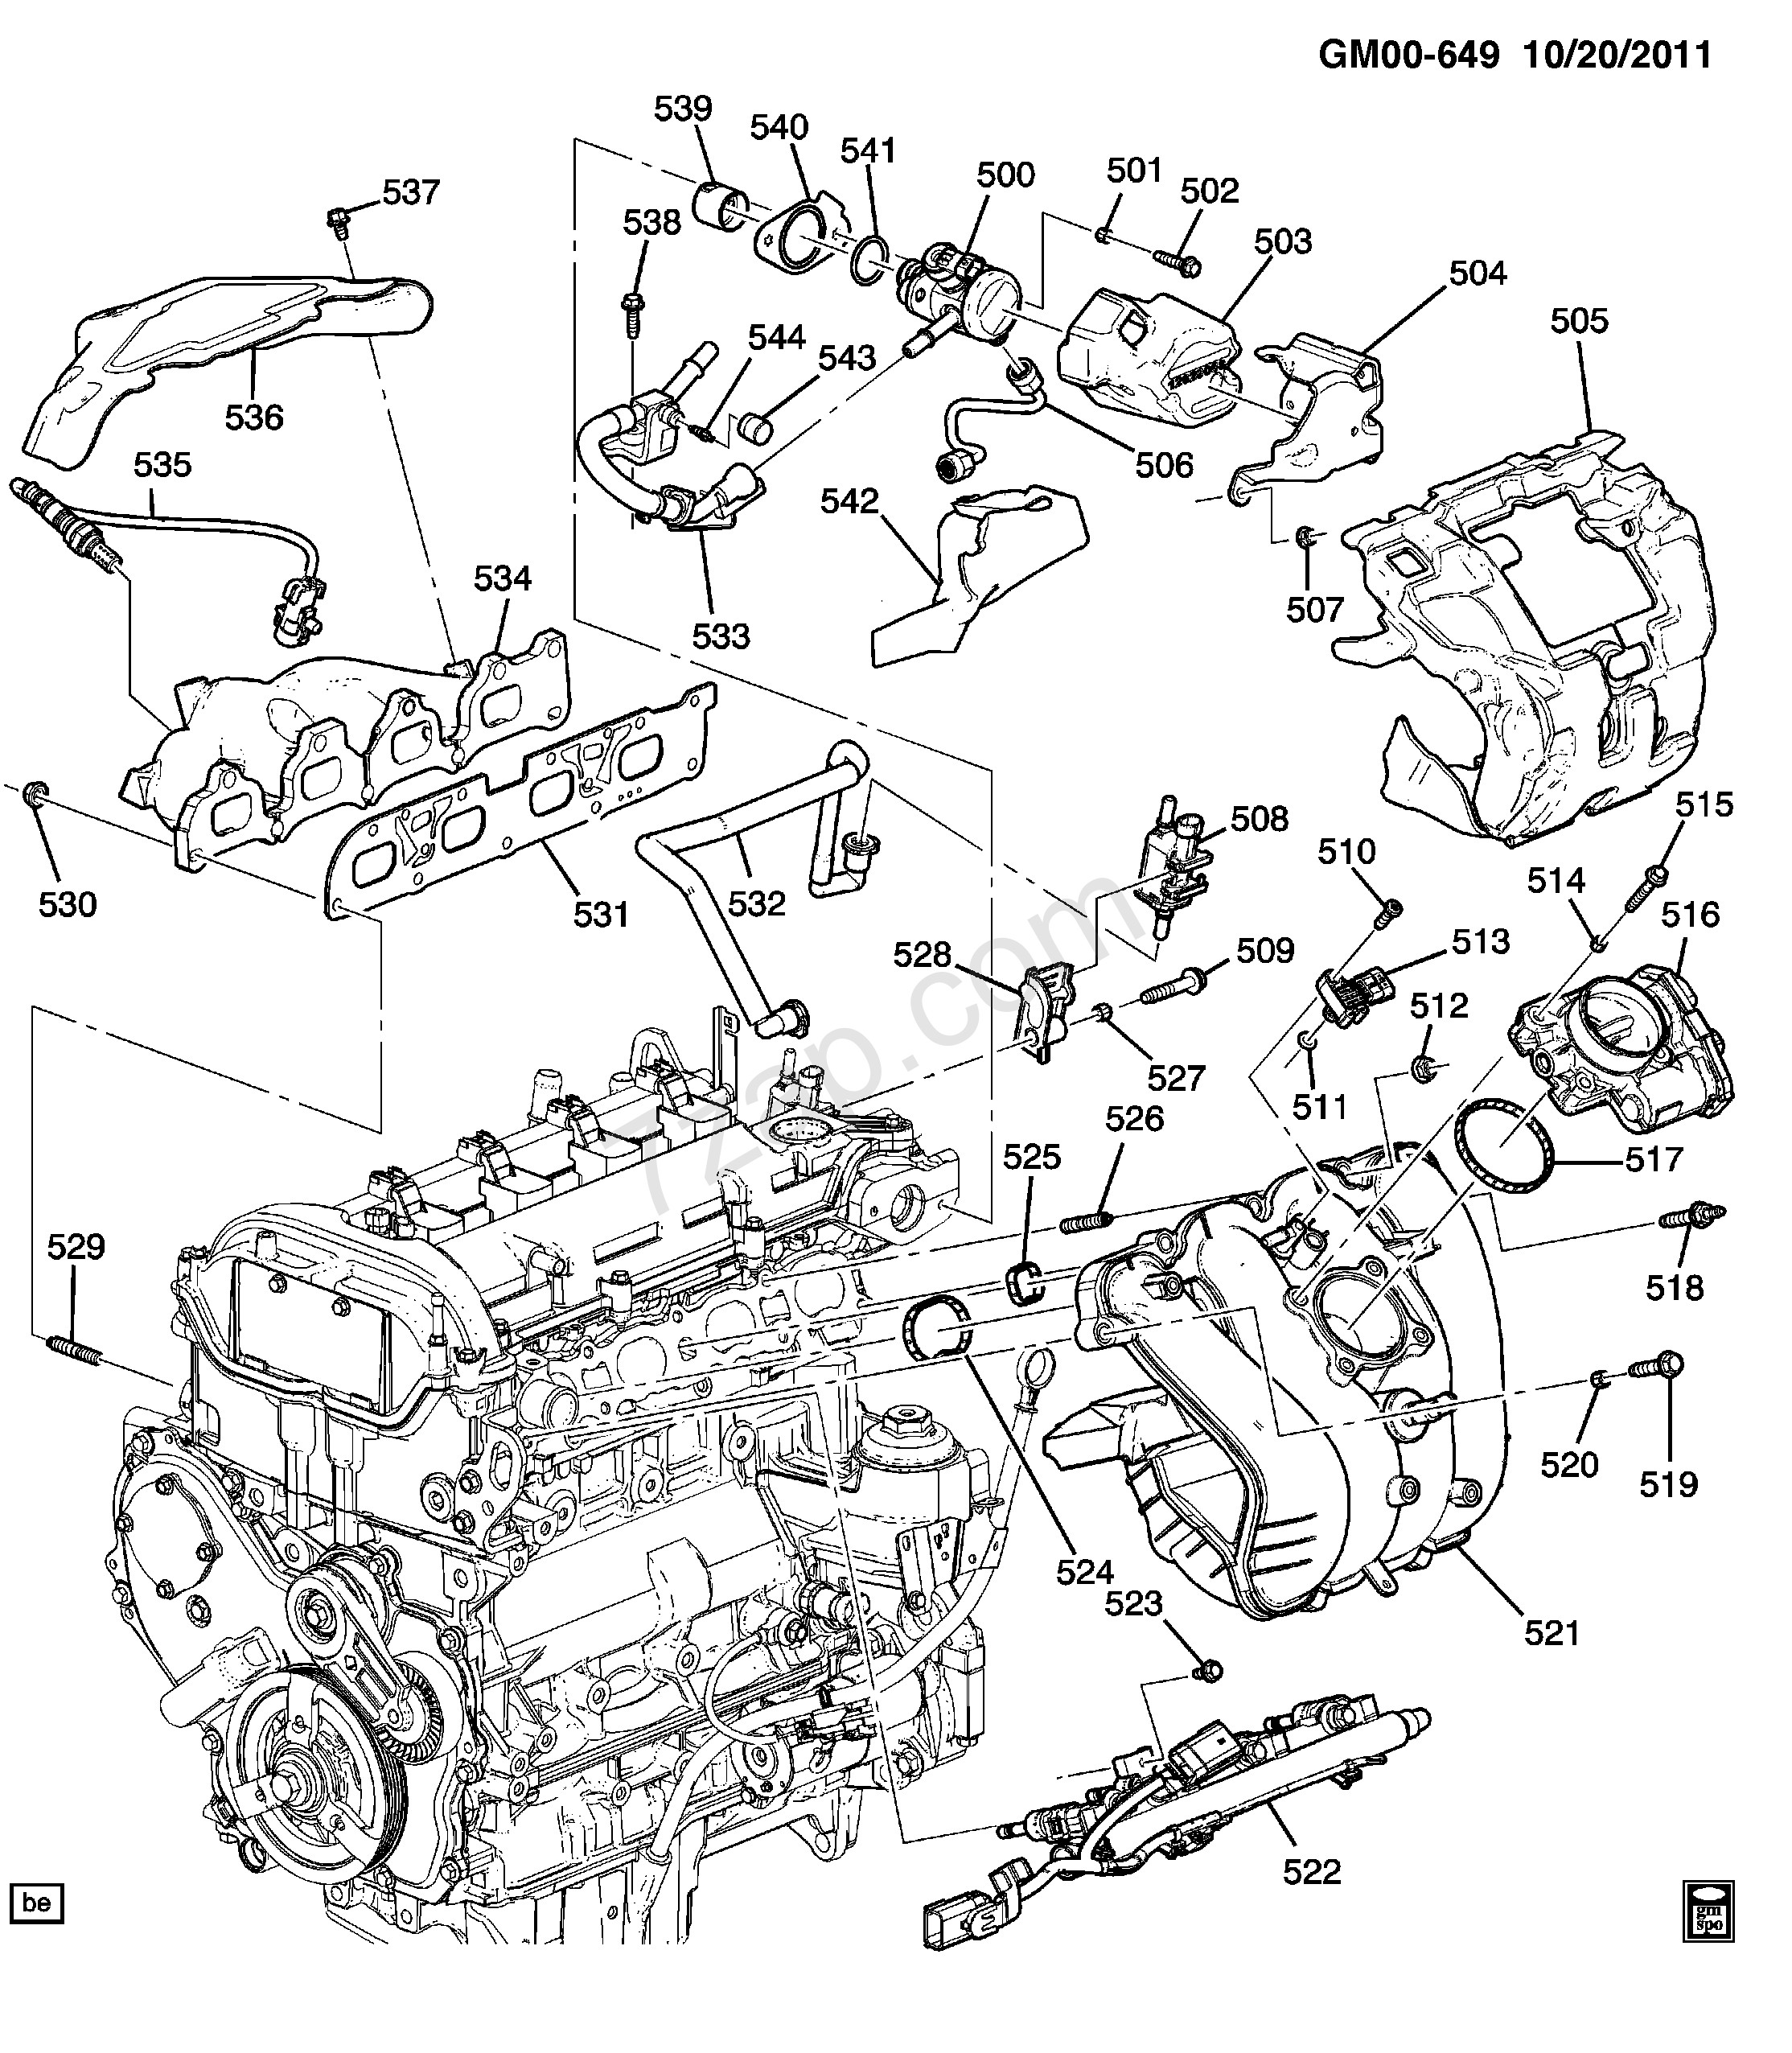 Chevy Motor Wiring Diagram